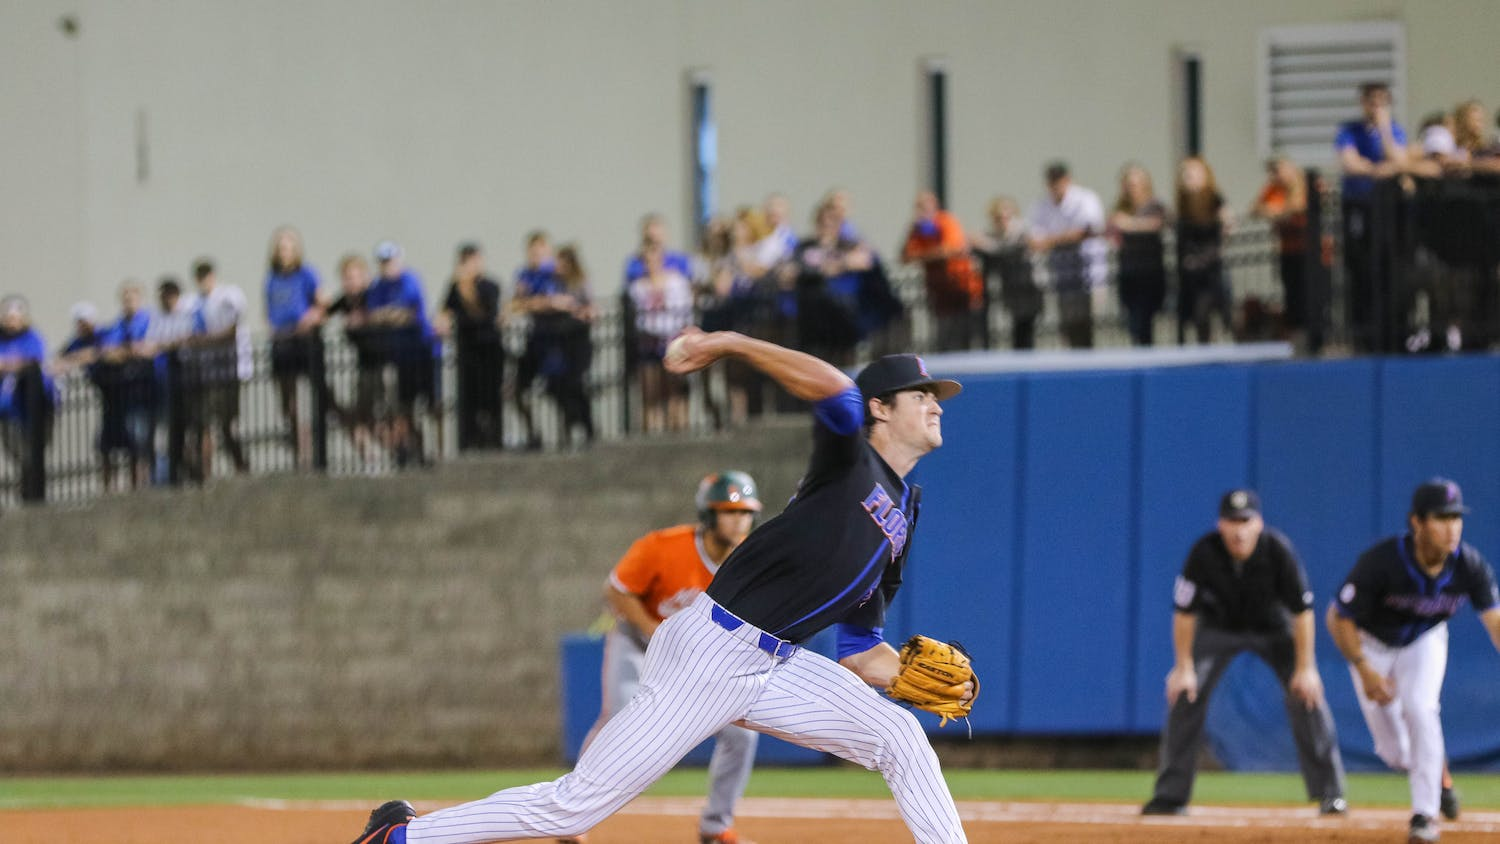 Junior Tommy Mace allowed just one run and three hits through five innings of work, striking out eight.